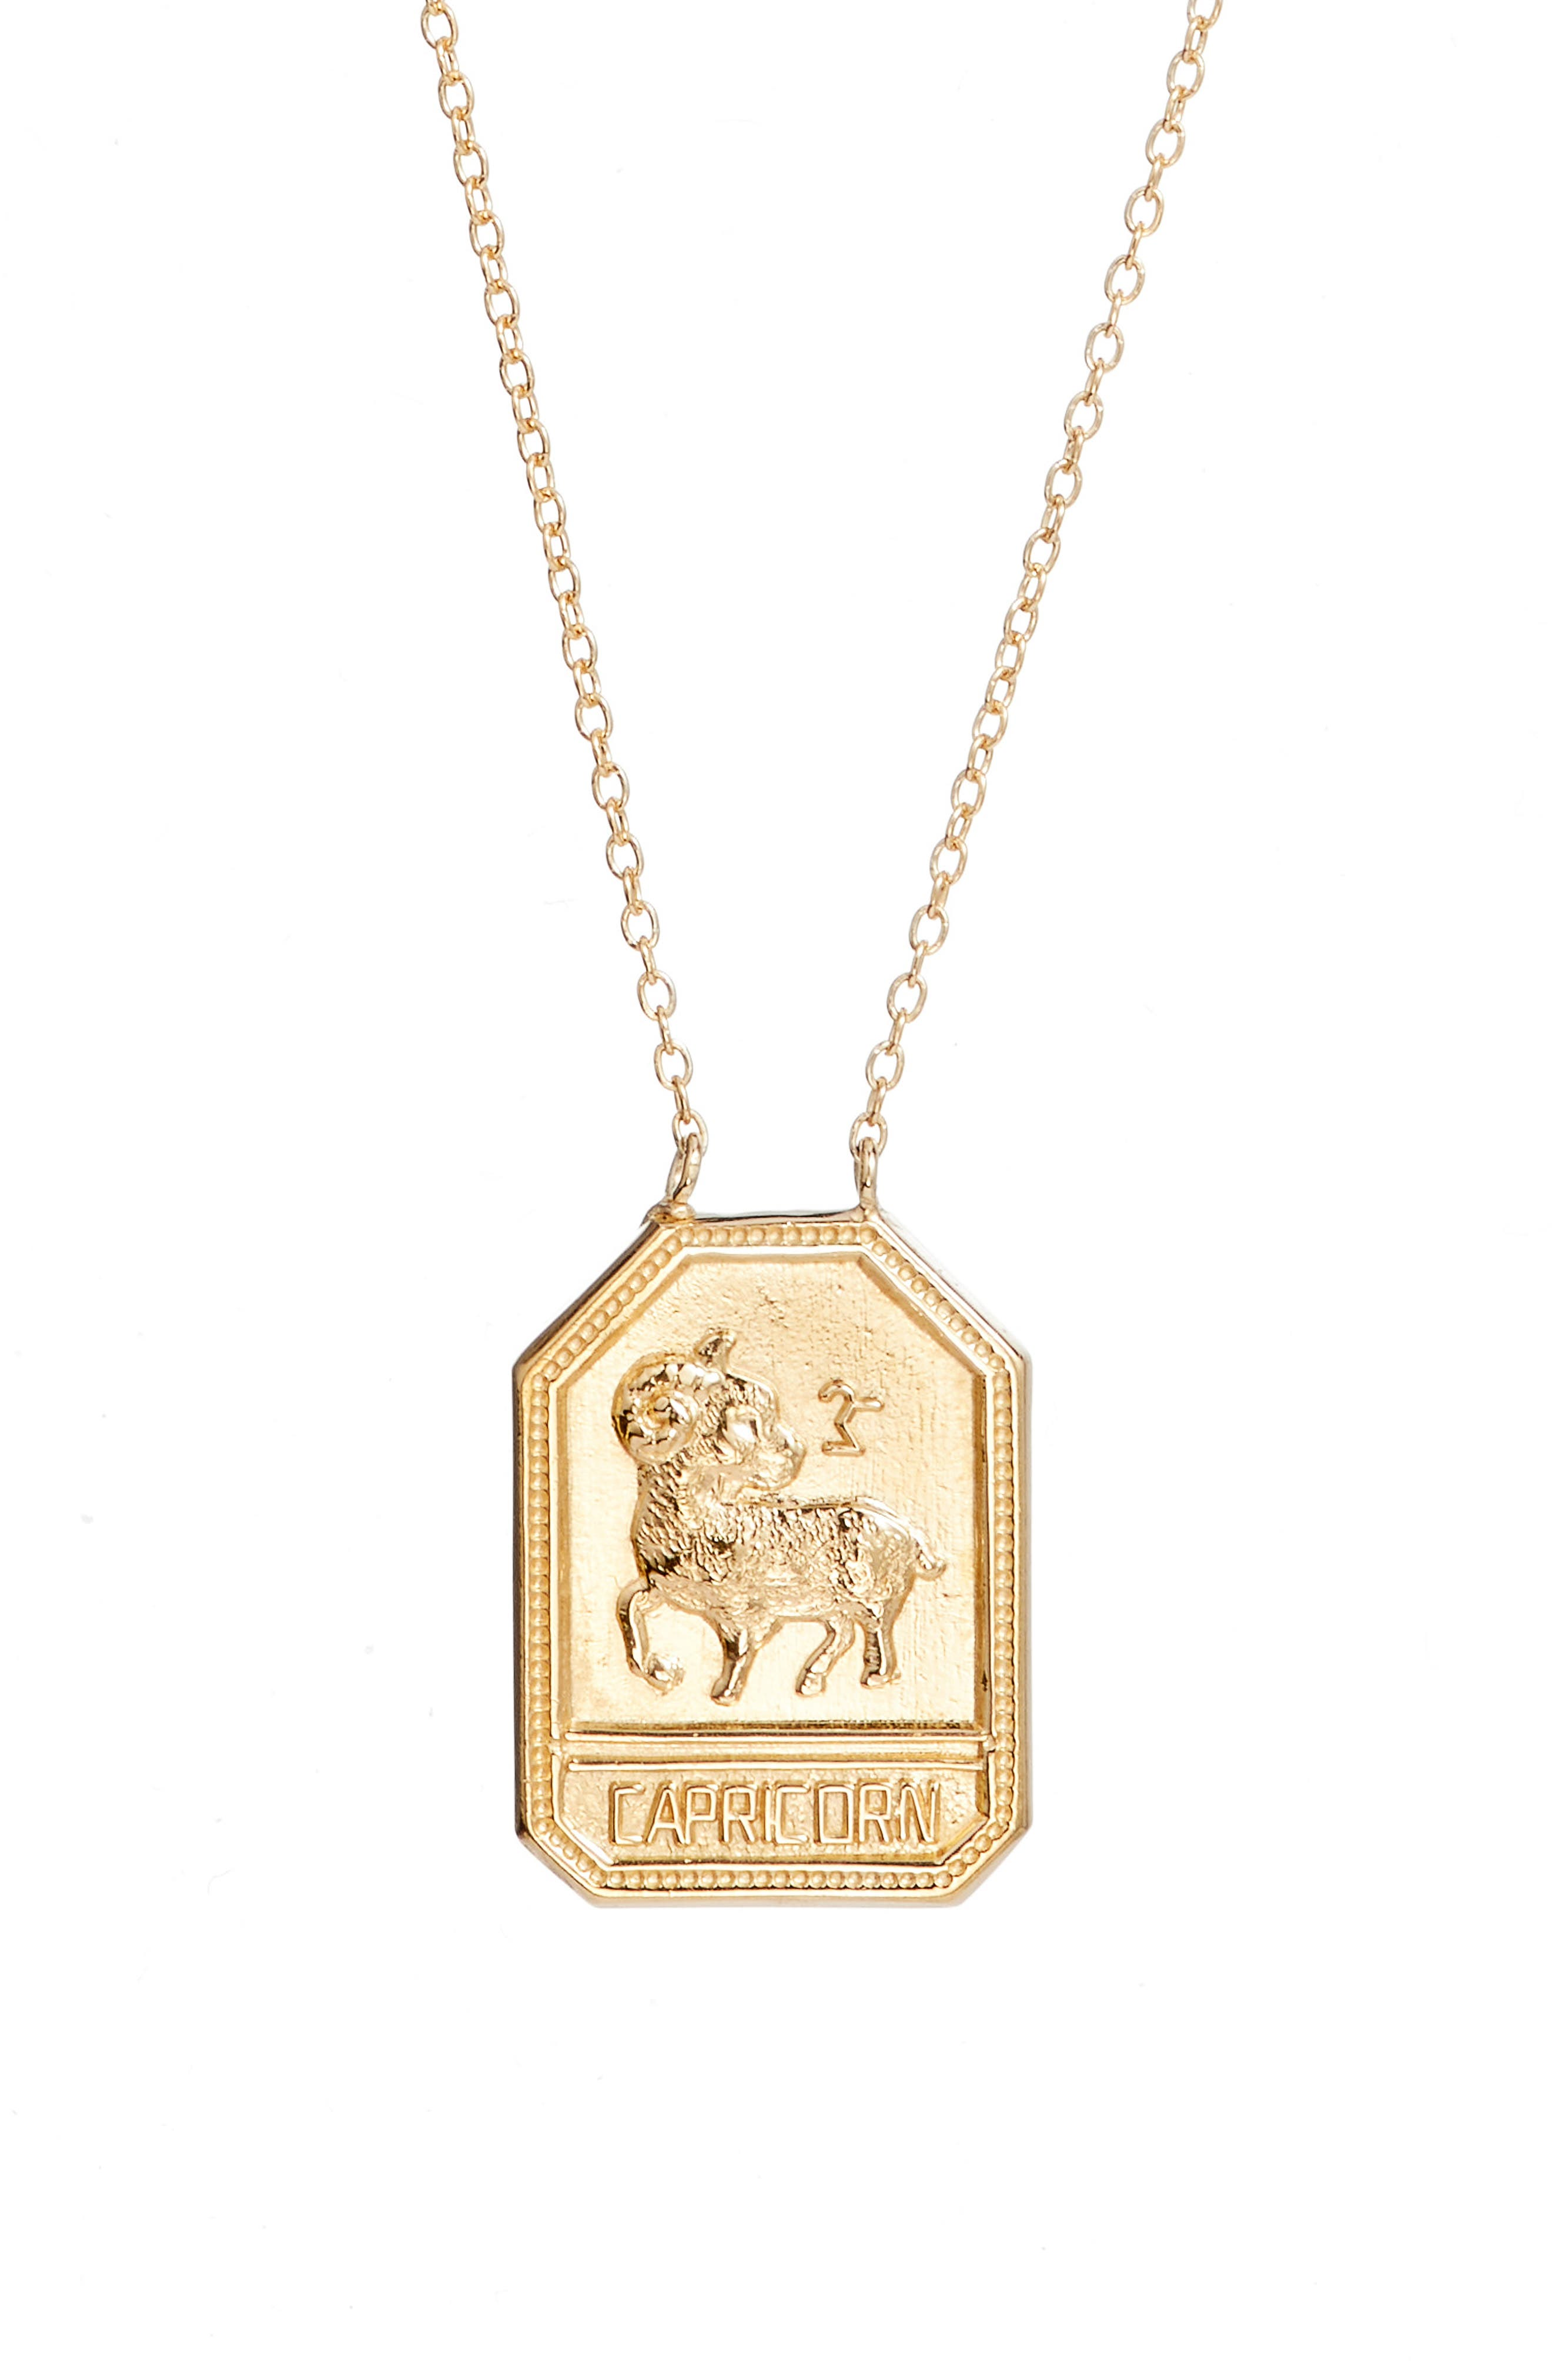 Jewelry Kiana Zodiac Pendant Necklace,                             Alternate thumbnail 2, color,                             CAPRICORN GOLD